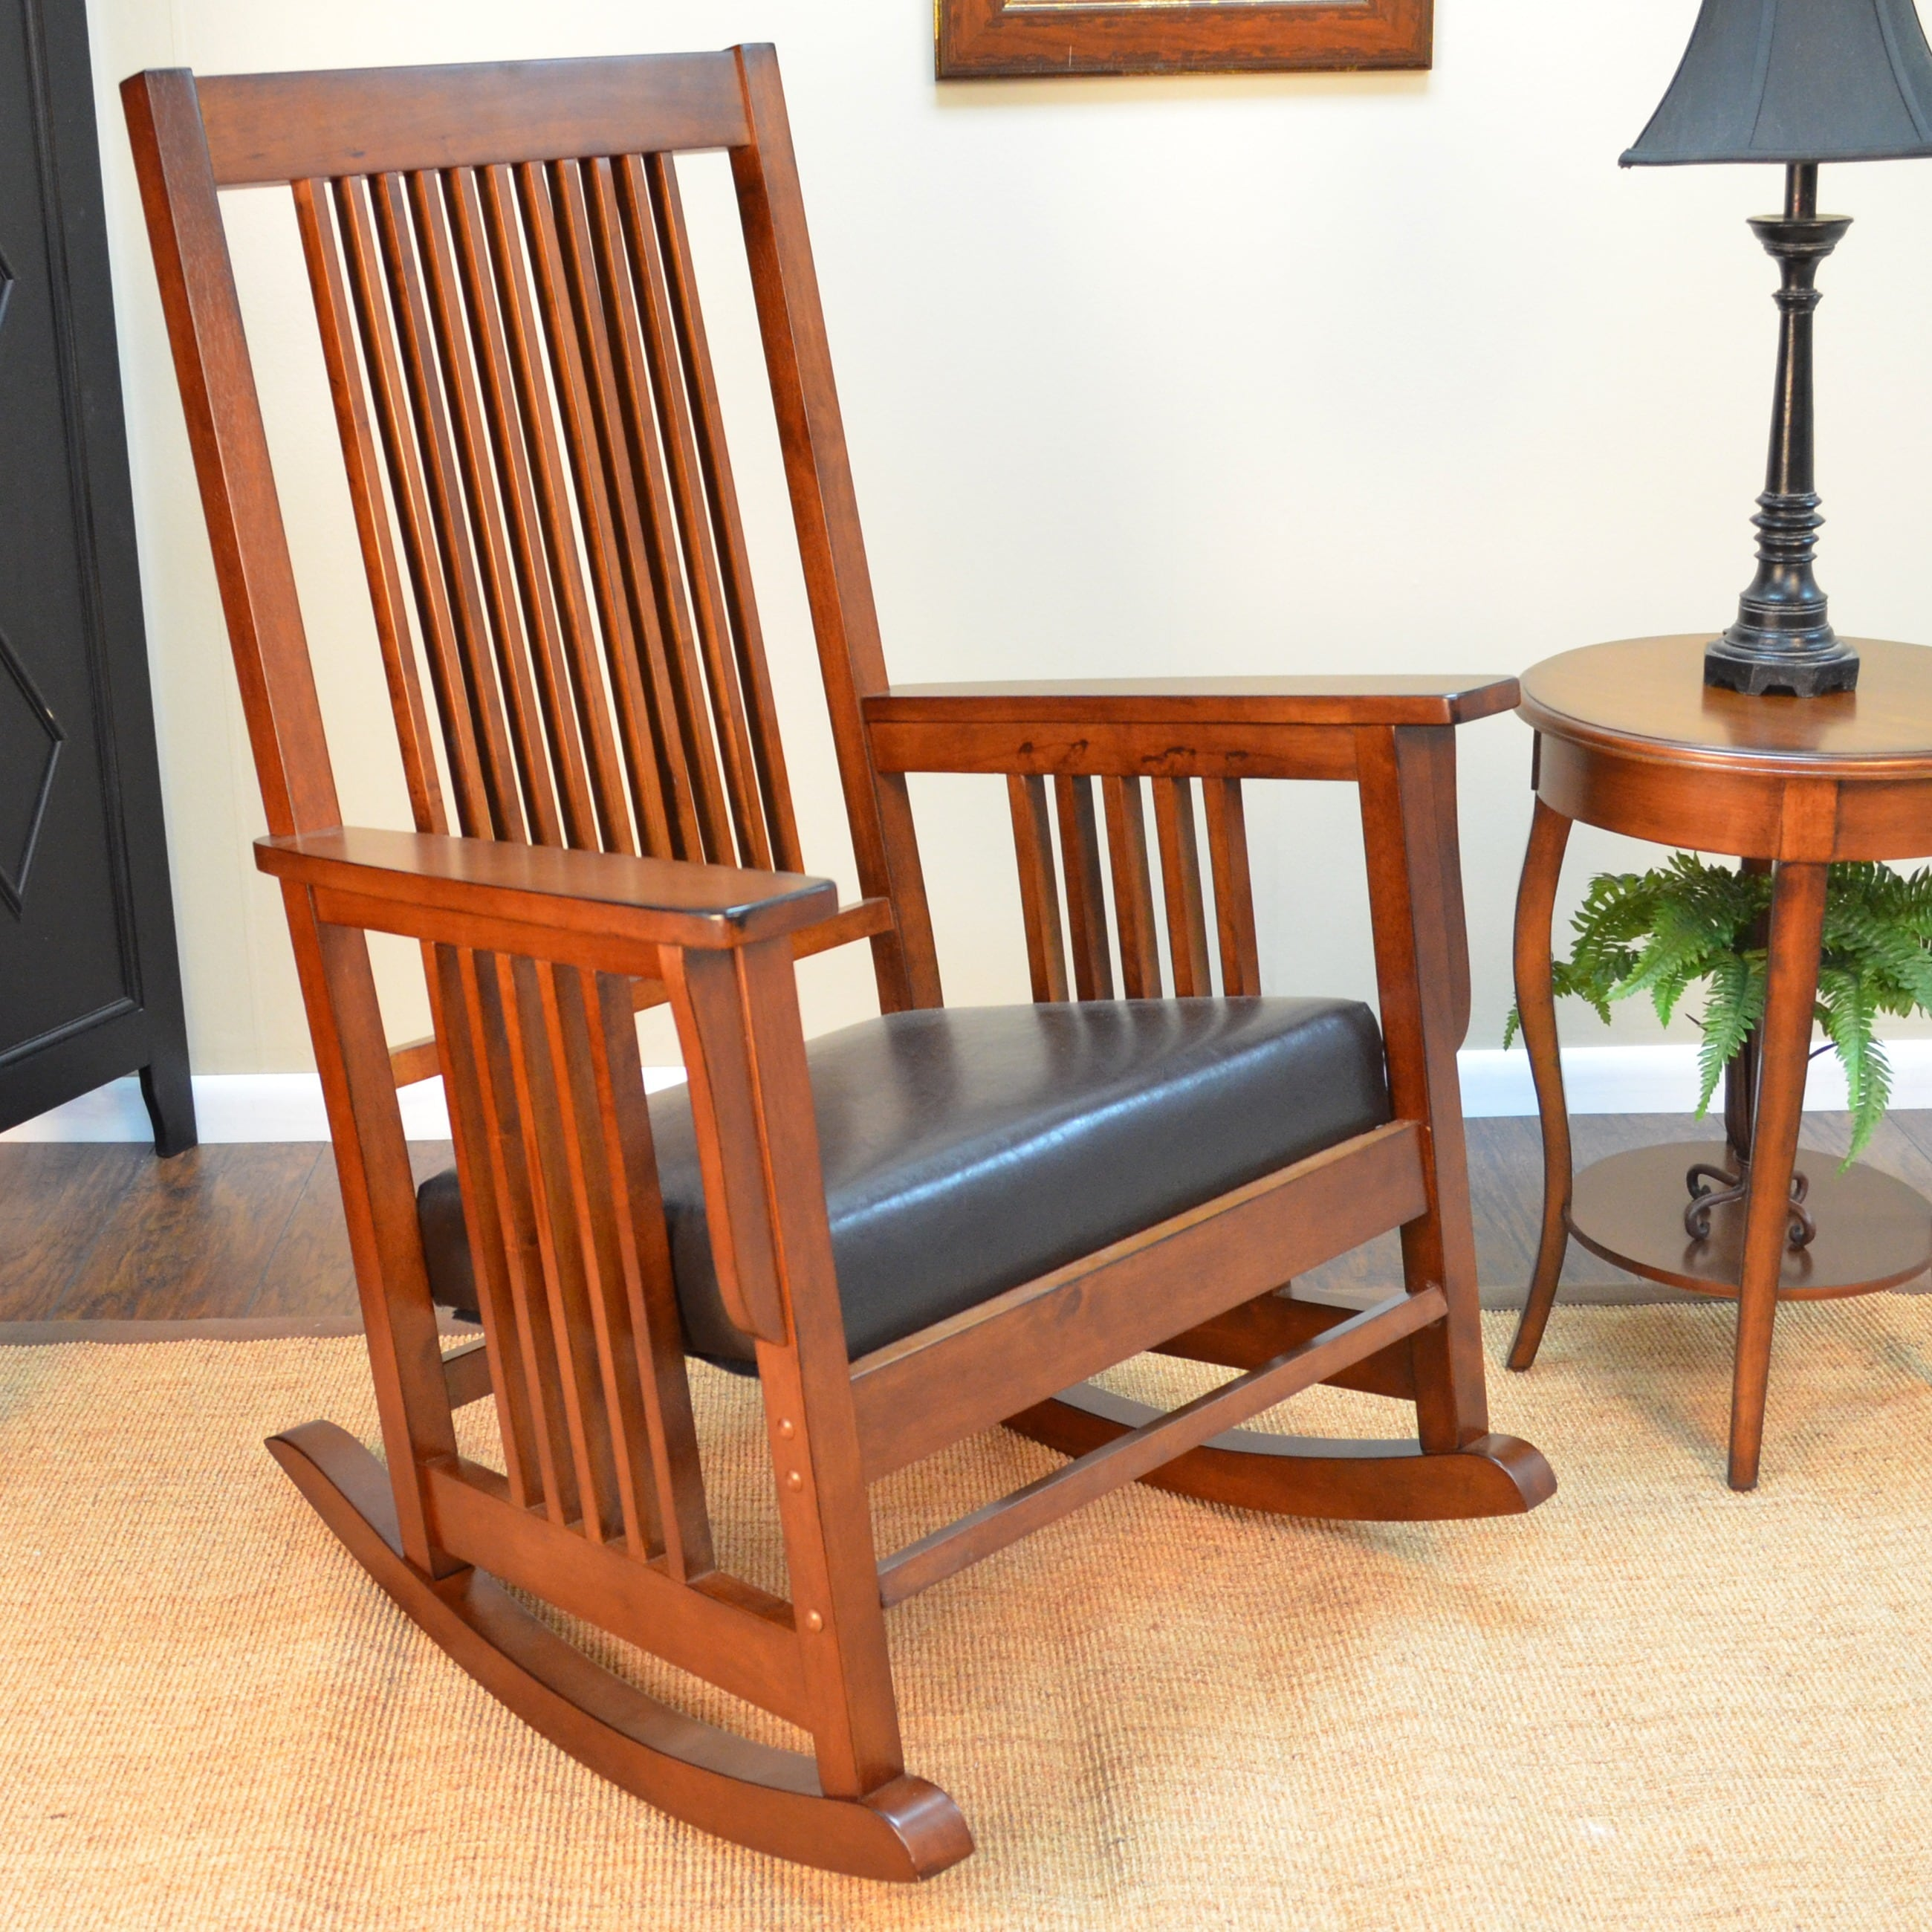 Overstock Rocking Chairs Montego Deluxe Mission Rocker Chair Overstock Shopping